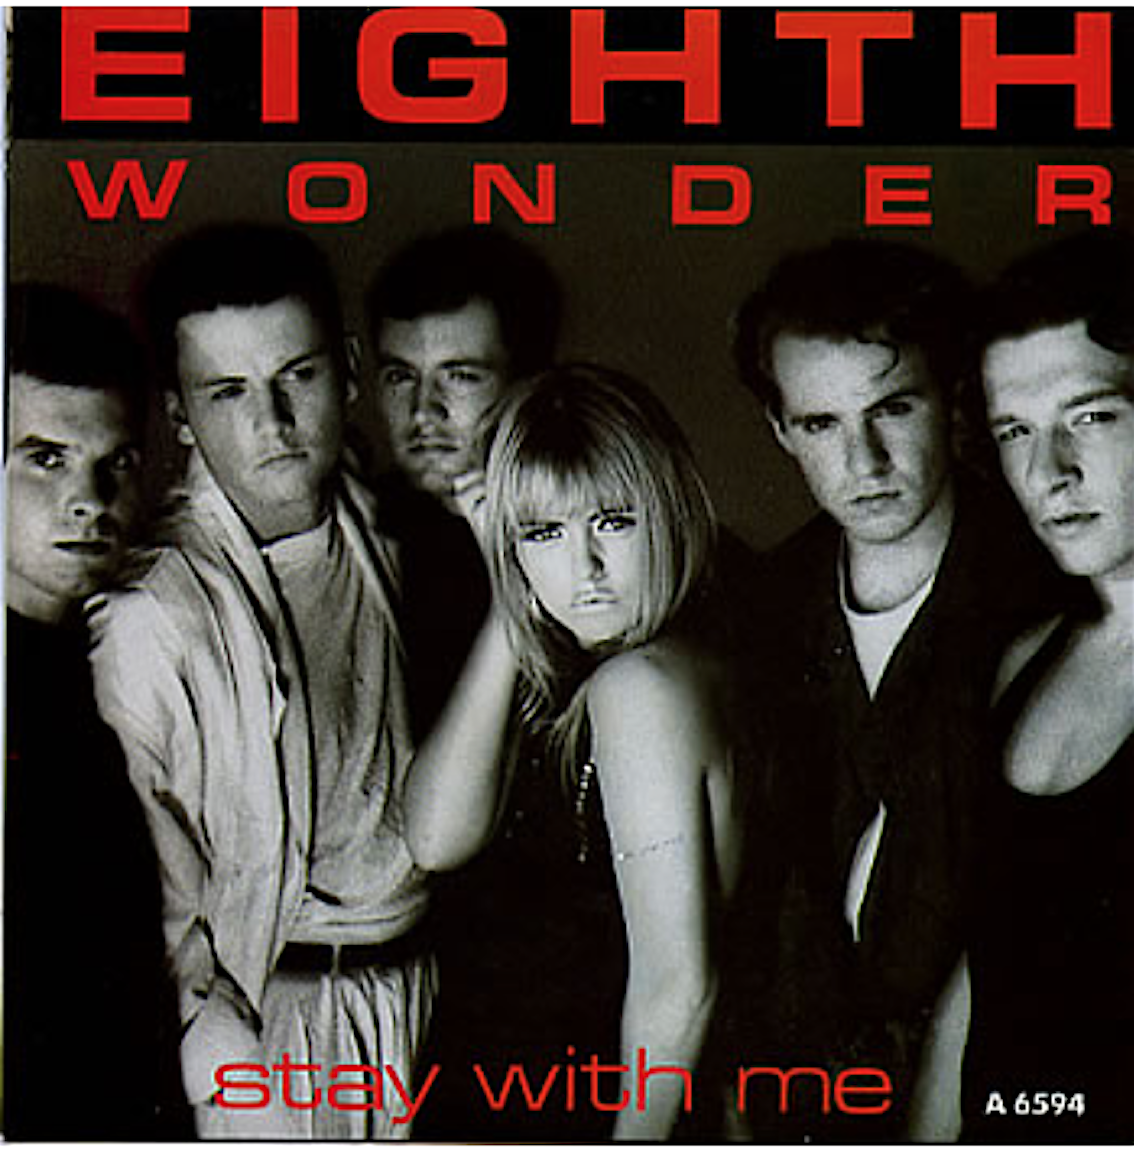 Eight_wonder_stay_with_me_patsy_kensit